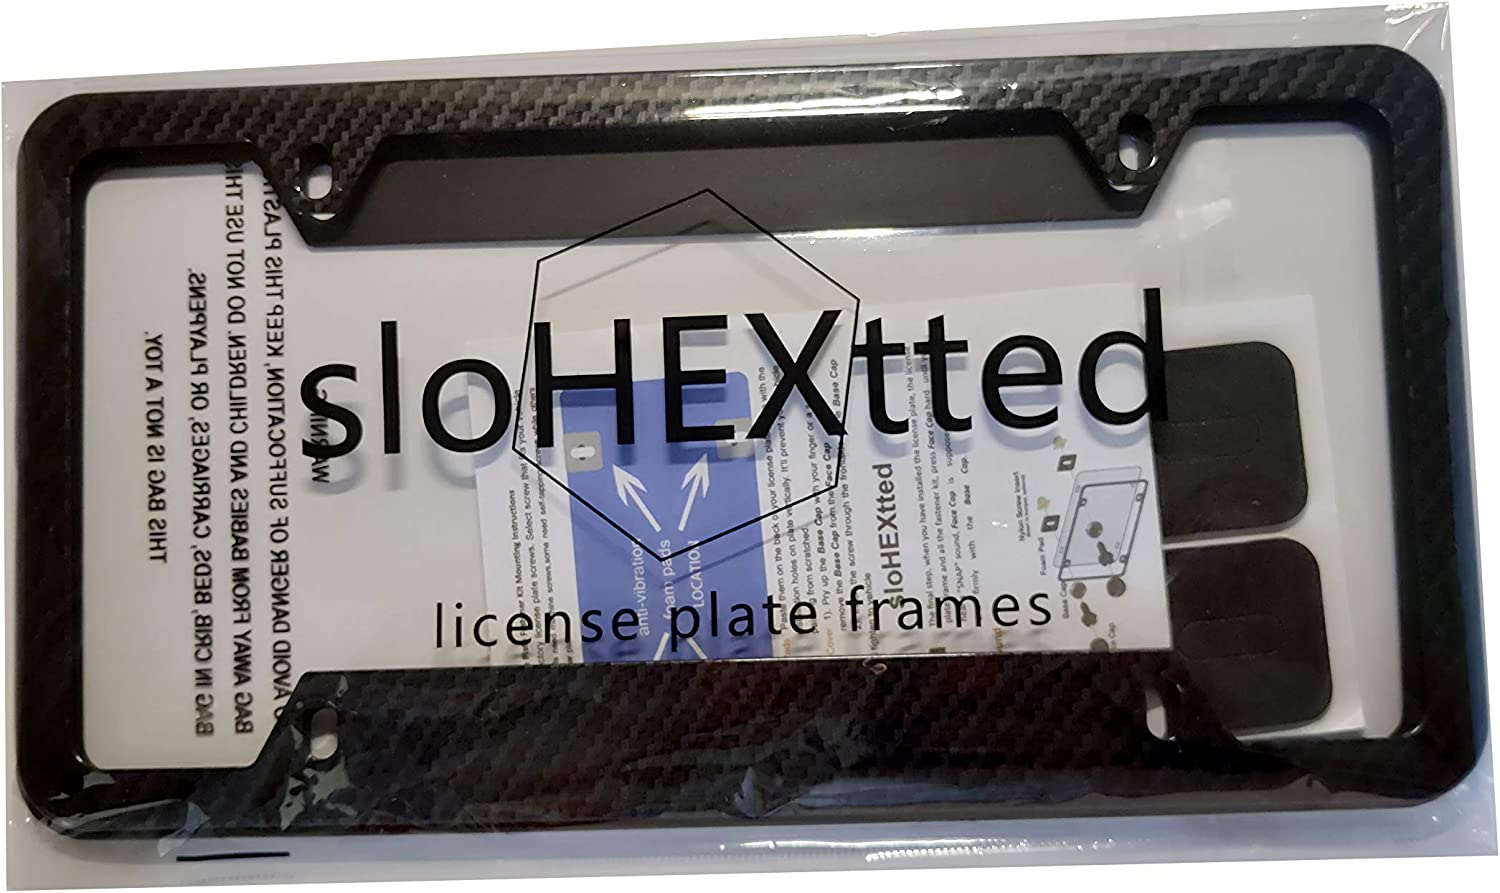 All-wearther Black Aluminum Metal Plate Holders for Front /& Rear License Tags License Plate Frames Cabon Fiber 2Pcs 4 Holes-US Standard Cars License Plate Covers